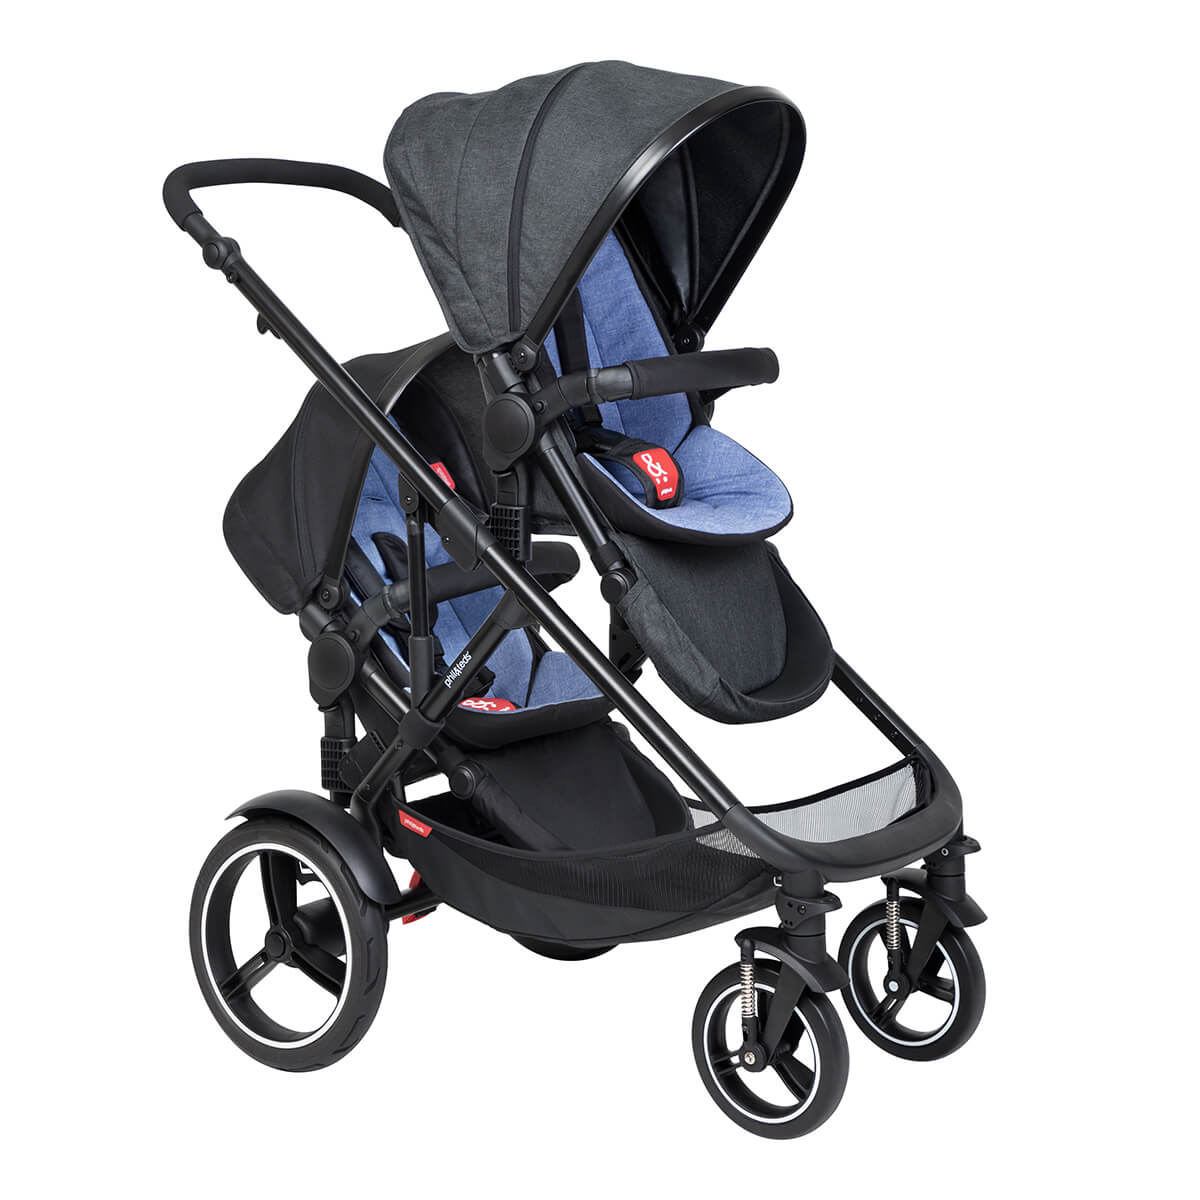 https://cdn.accentuate.io/4509916495949/19466204315842/philteds-voyager-inline-buggy-with-double-kit-in-rear-in-sky-blue-colour-v1626485594563.jpg?1200x1200